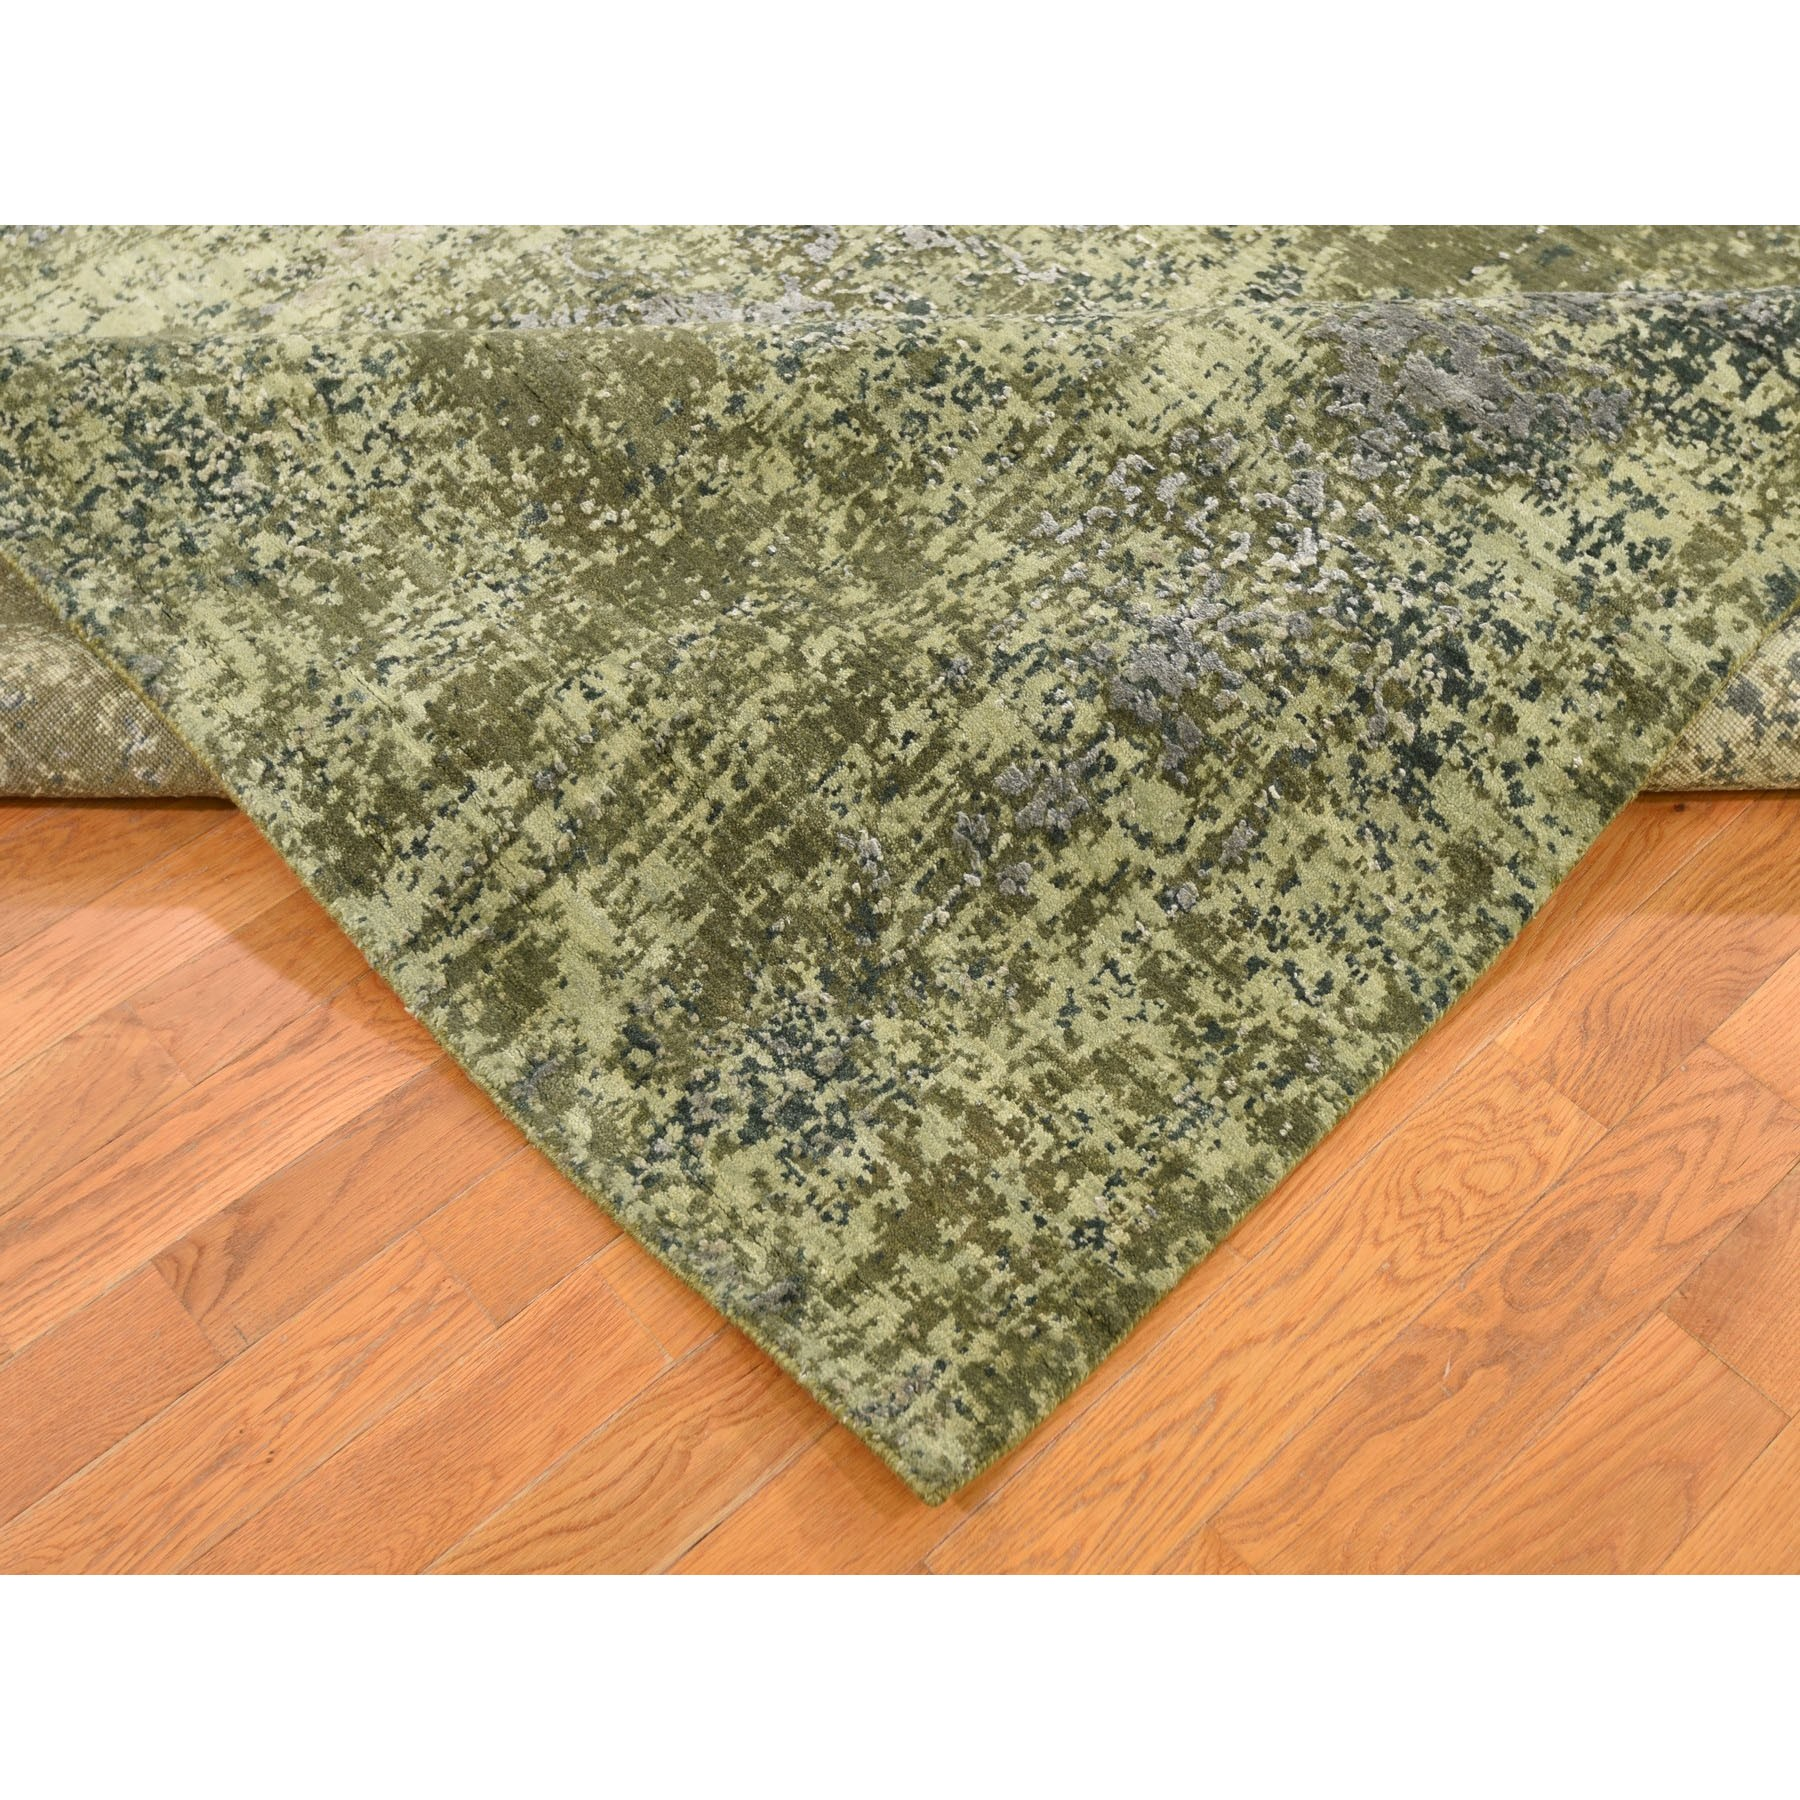 9-1 x12- The Greens, Pure Silk With Textured Wool Hand Knotted Oriental Rug